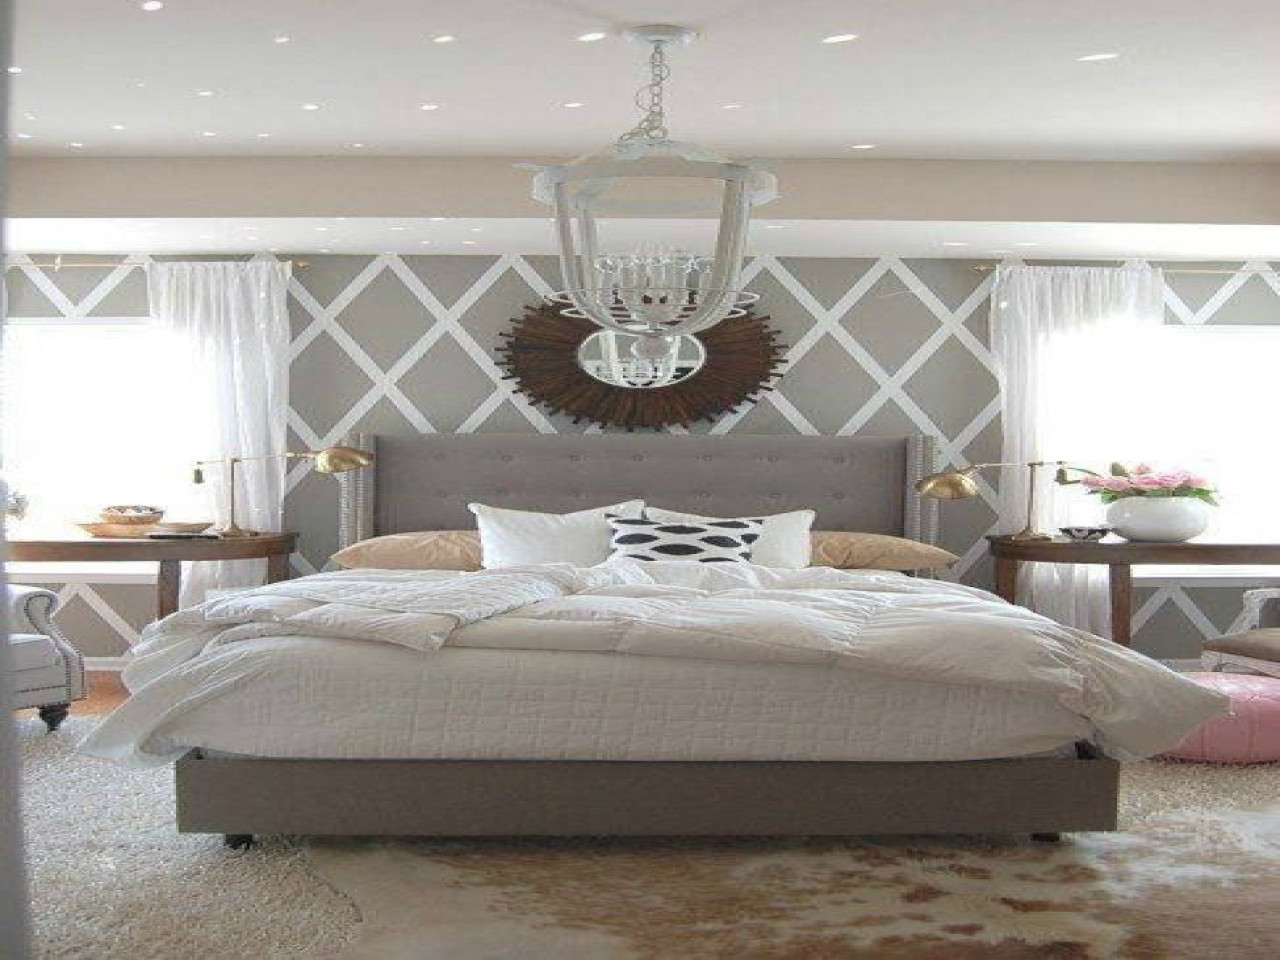 Best ideas about Grey Accent Wall Bedroom . Save or Pin Wall patterns for bedrooms grey white and blue bedroom Now.